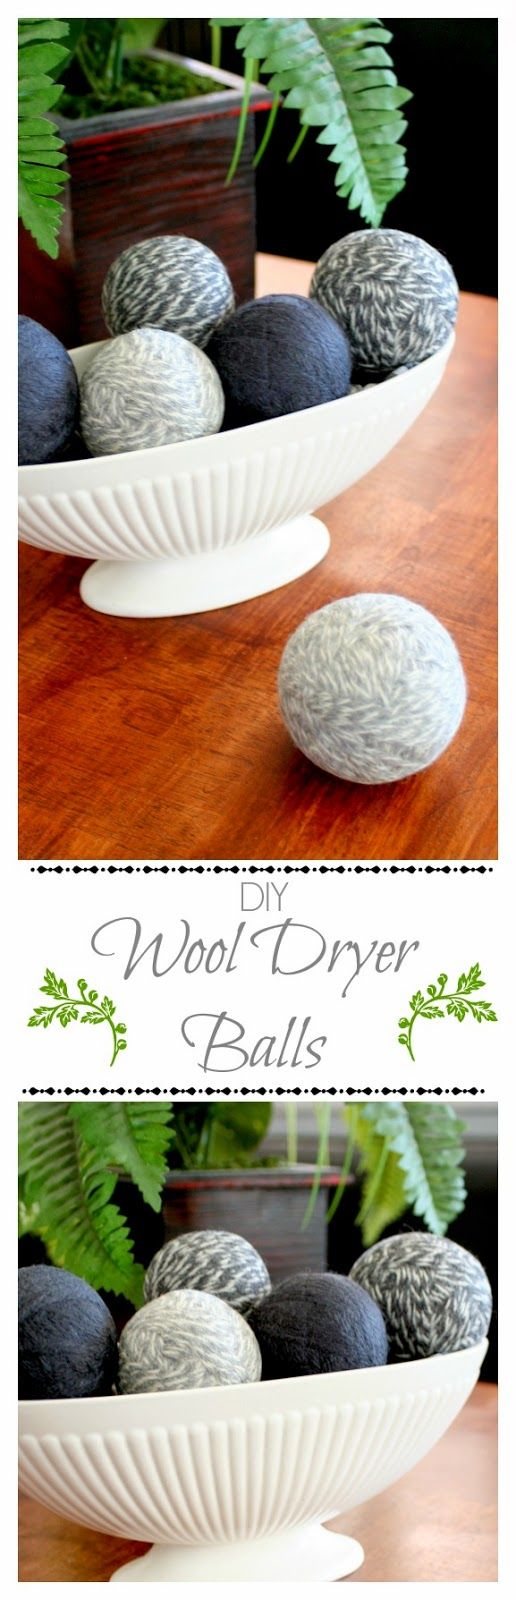 DIY Wool Dryer Balls - cuts your drying time in half and gets rid of static cling, plus they're really easy to make | jordansonion.com